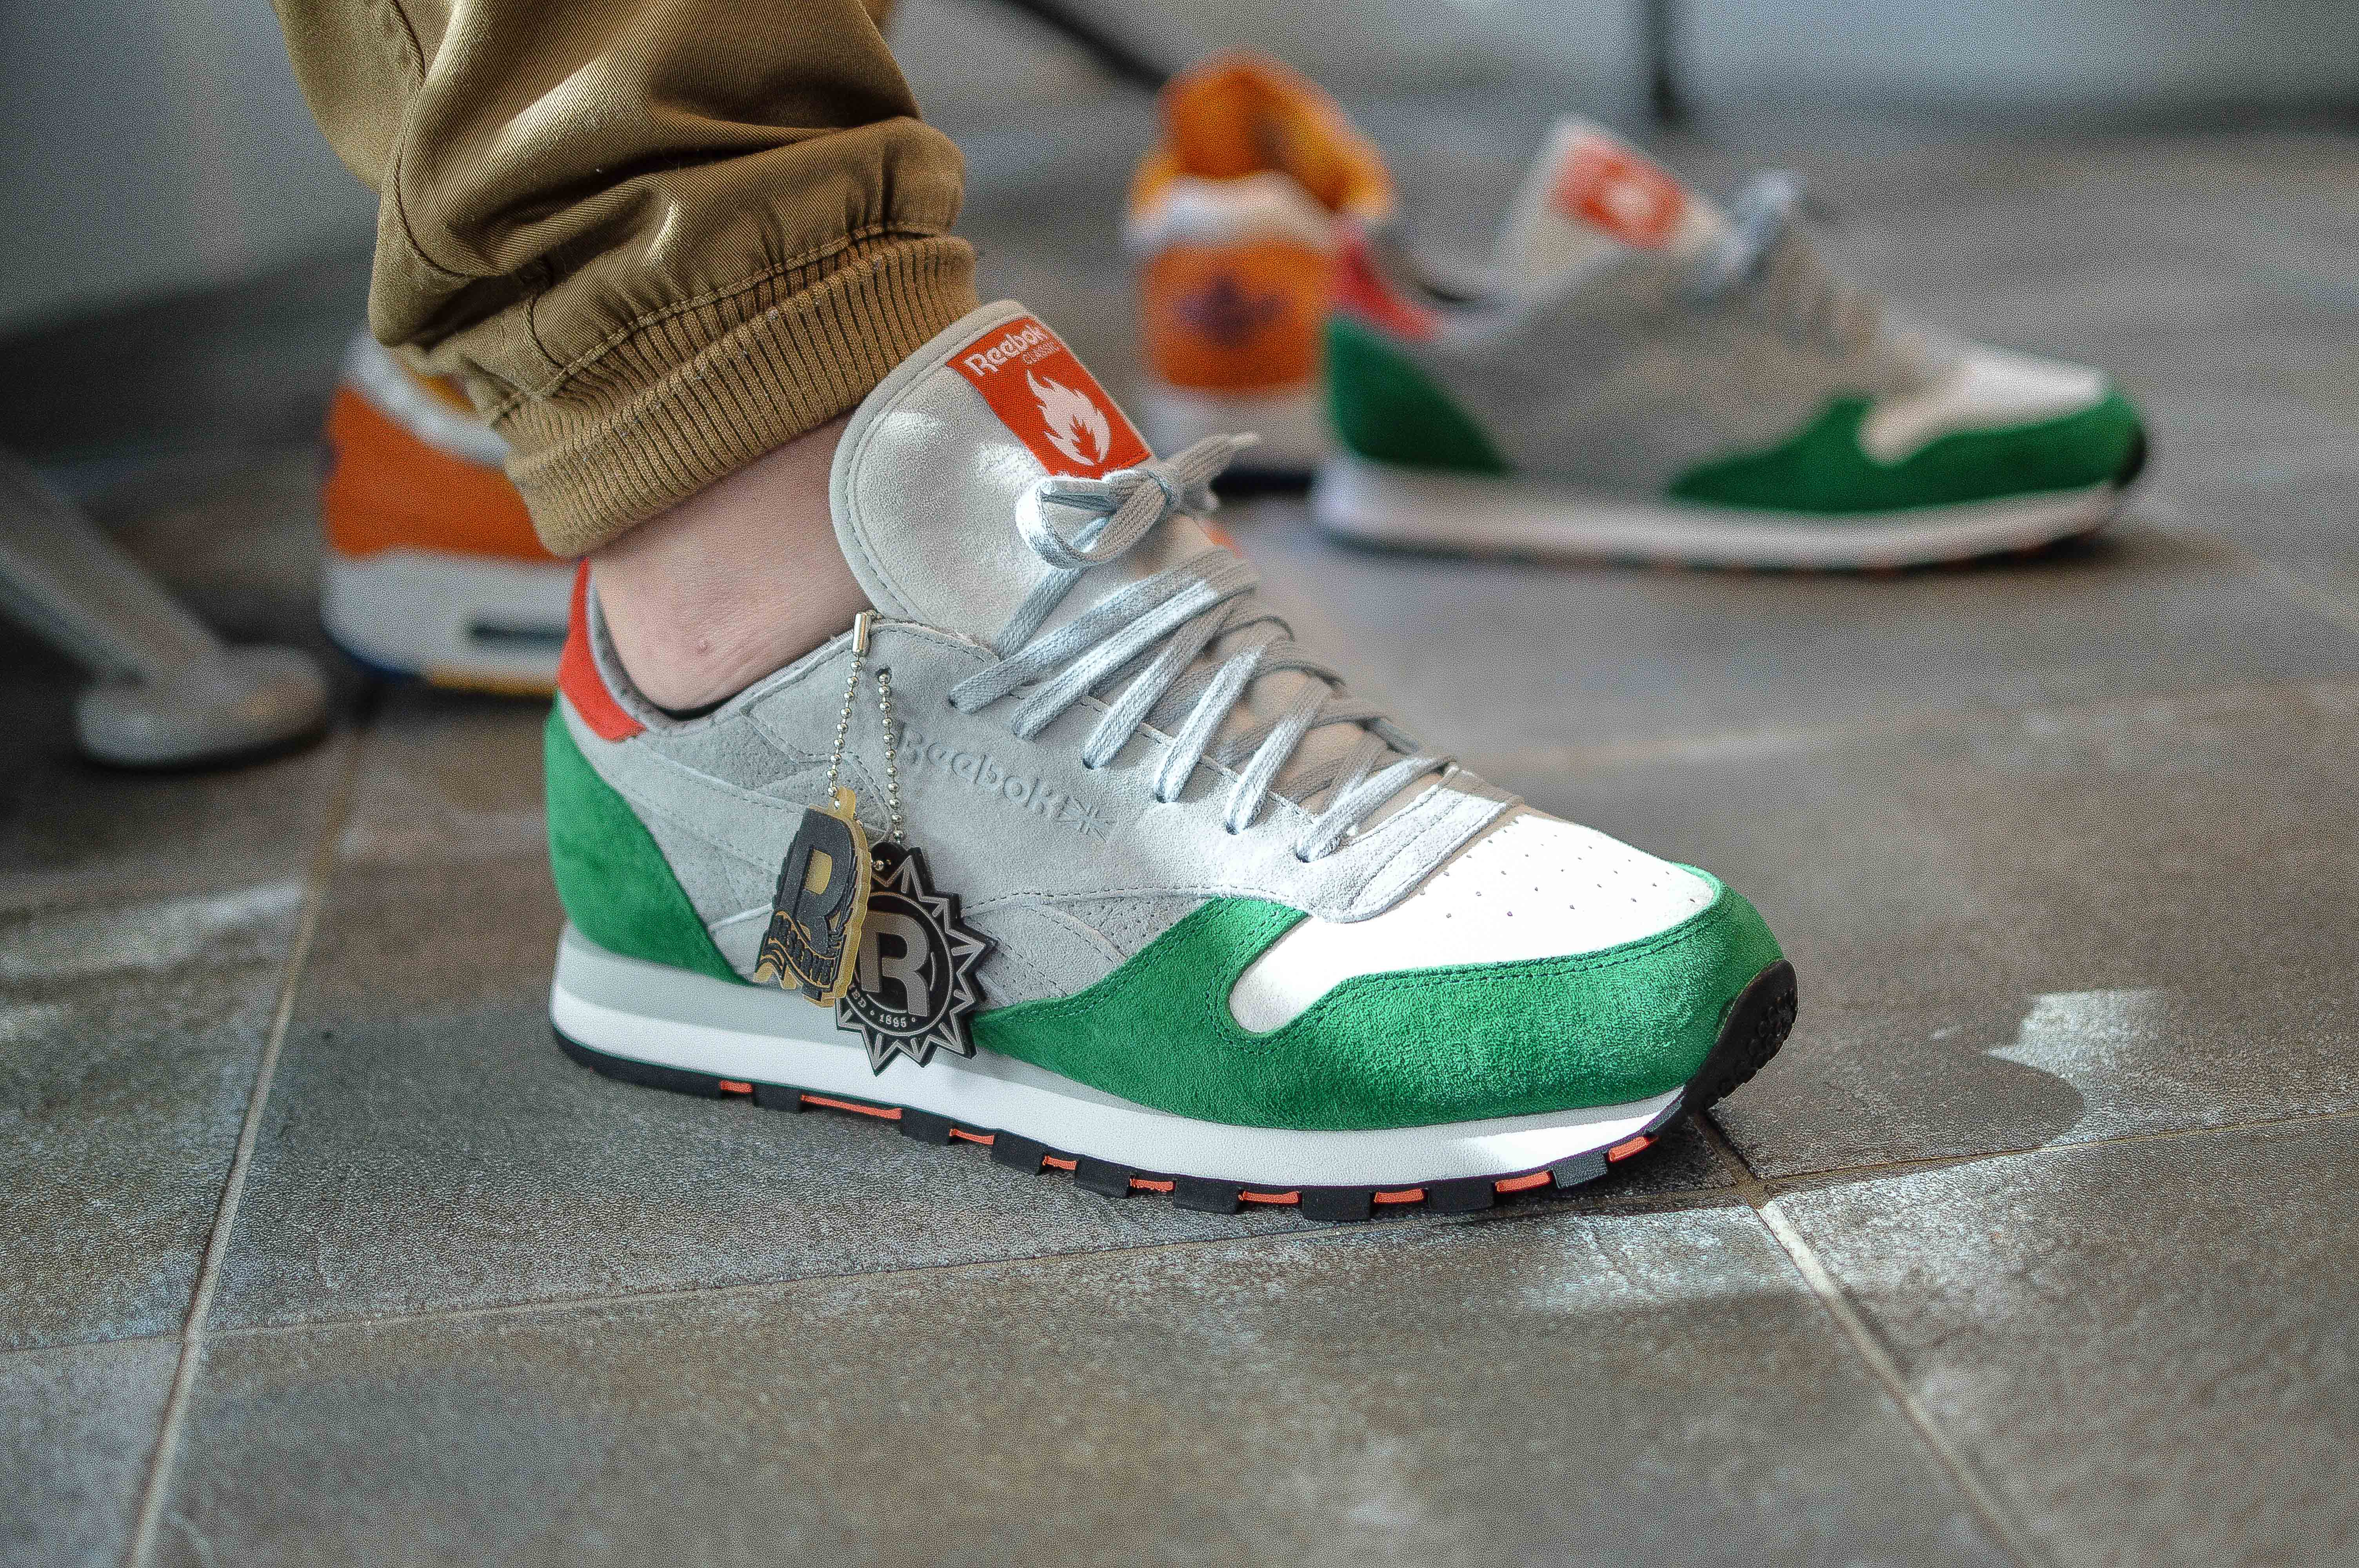 hanon shop x Reebok Classic Leather '3 Castles' – In store